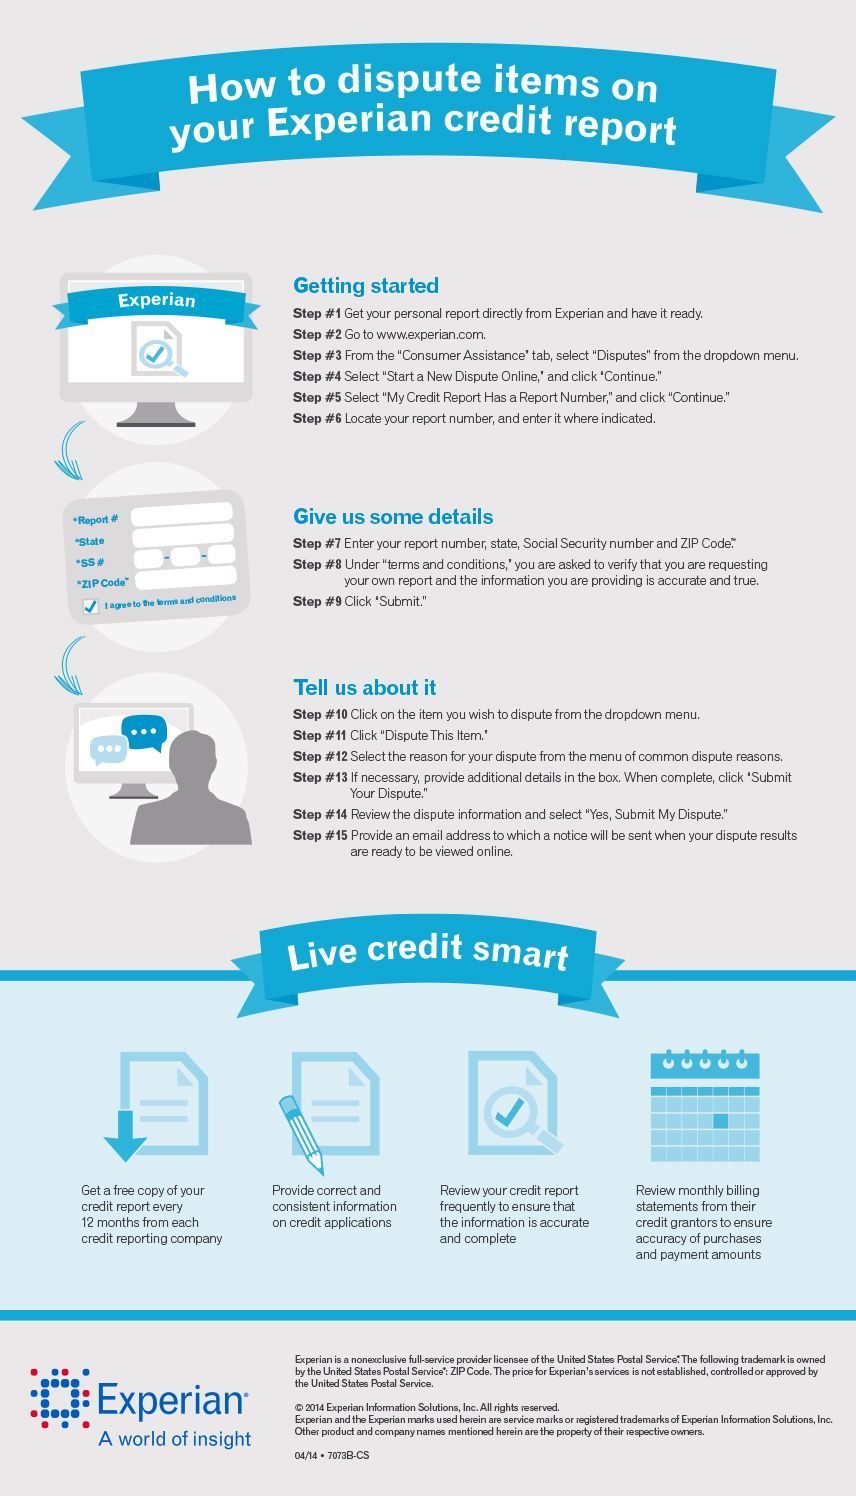 How To Dispute Items On Your Experian Credit Report Infographic Experian Global News Blog Credit Repair Credit Repair Services Credit Repair Business